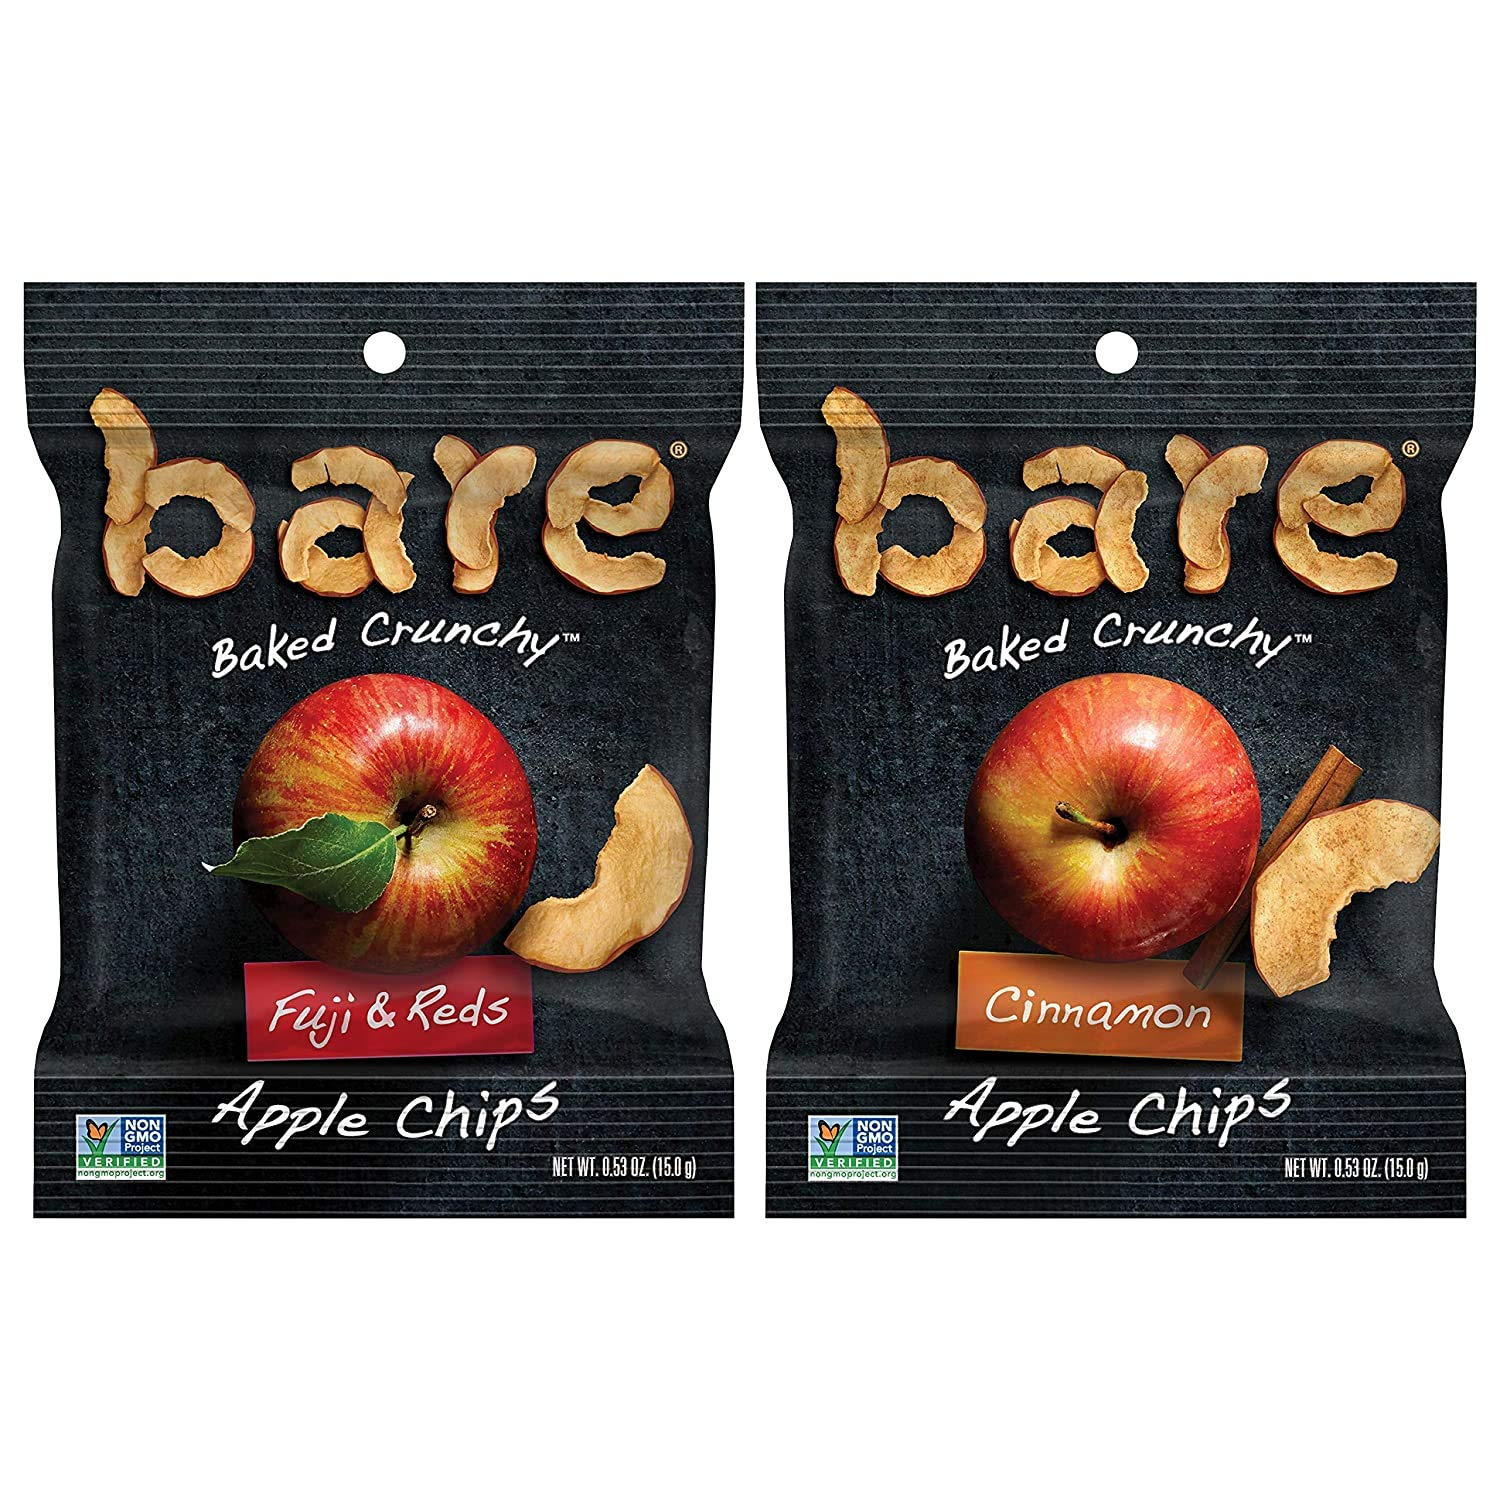 bare Baked Crunchy Apple Chips, 2 Flavor Variety, 0.53oz Snack Bags (7 Pack)